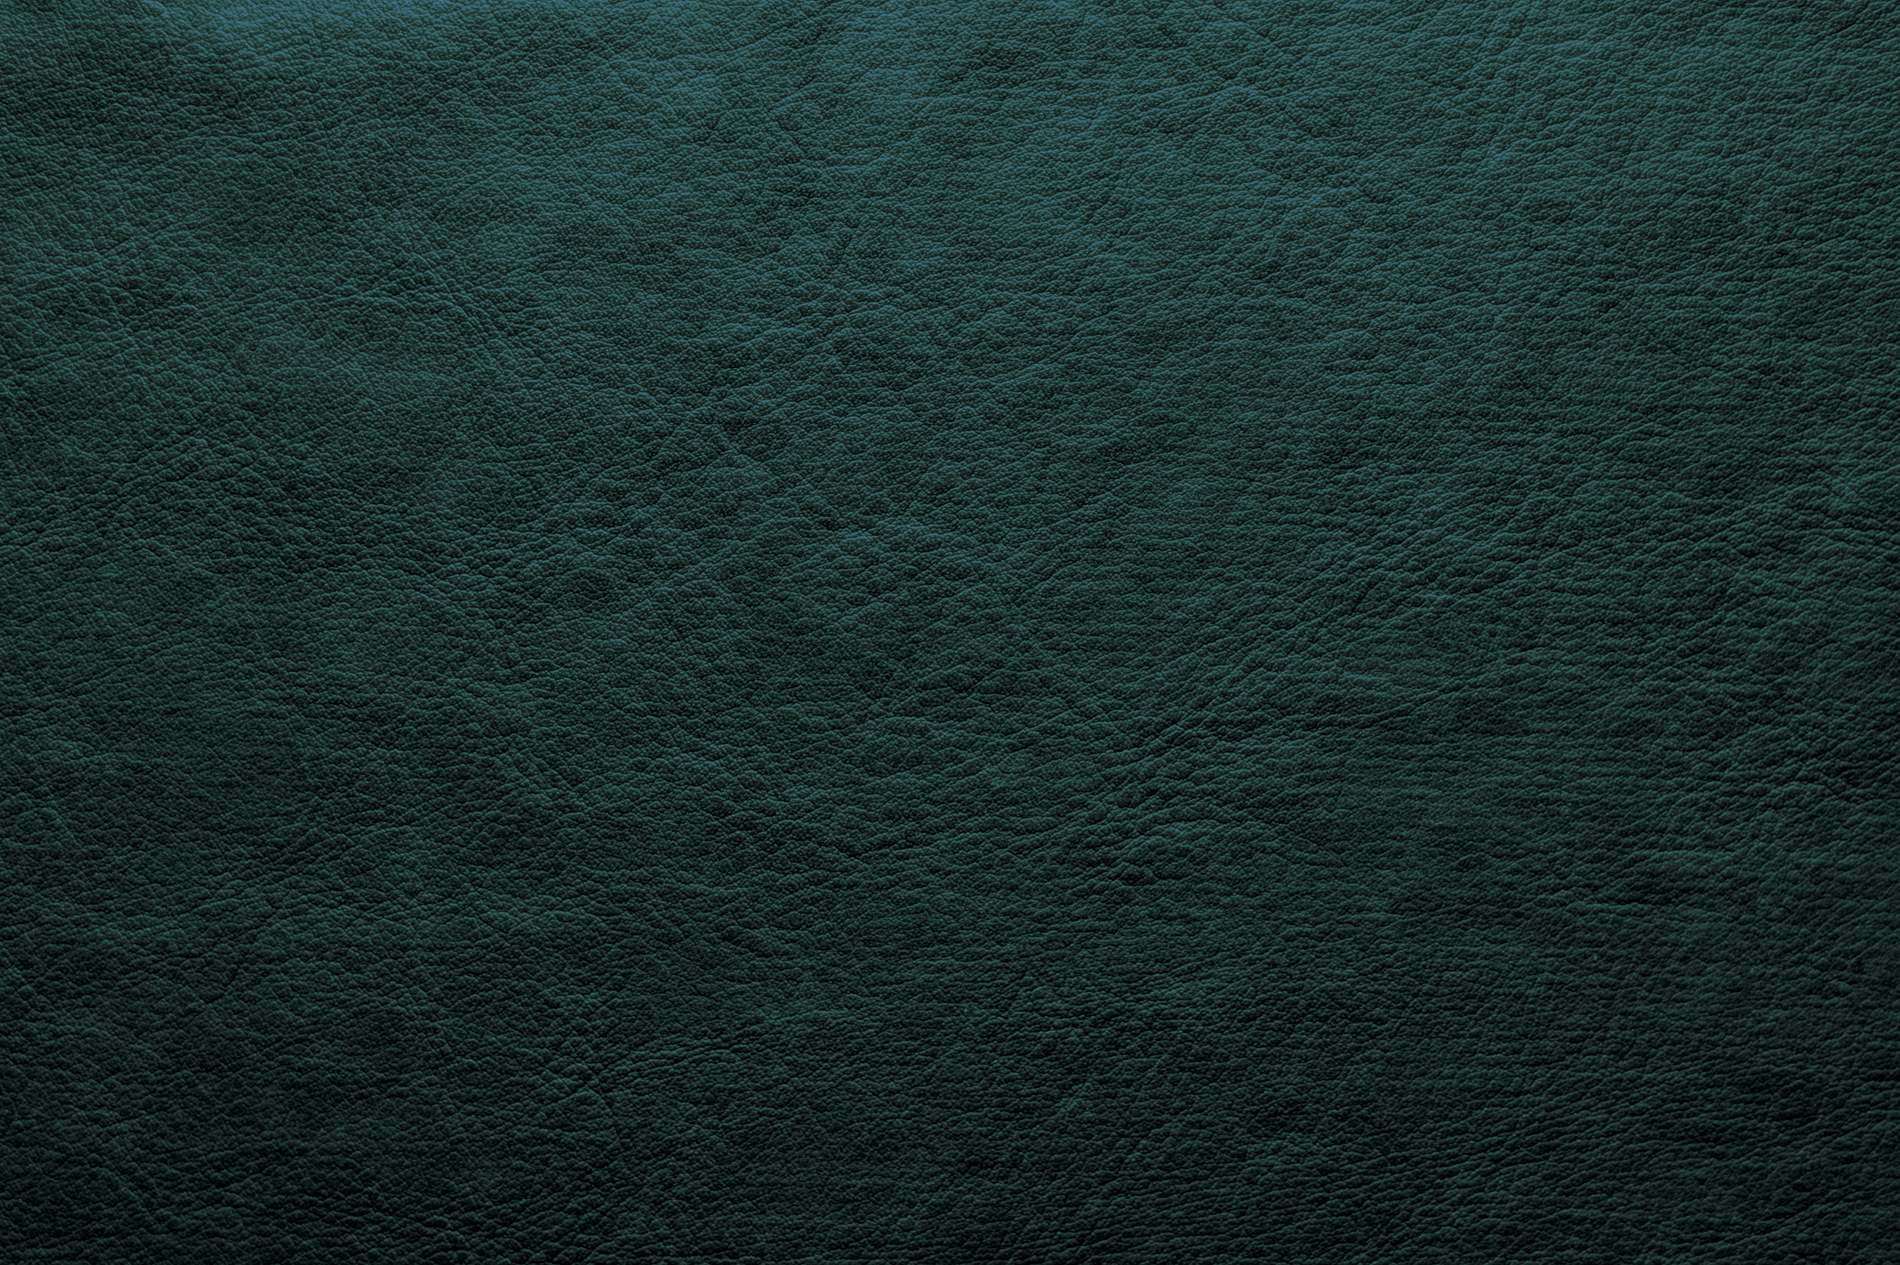 Low Sofa Dark Green Leather Background Texture Photohdx